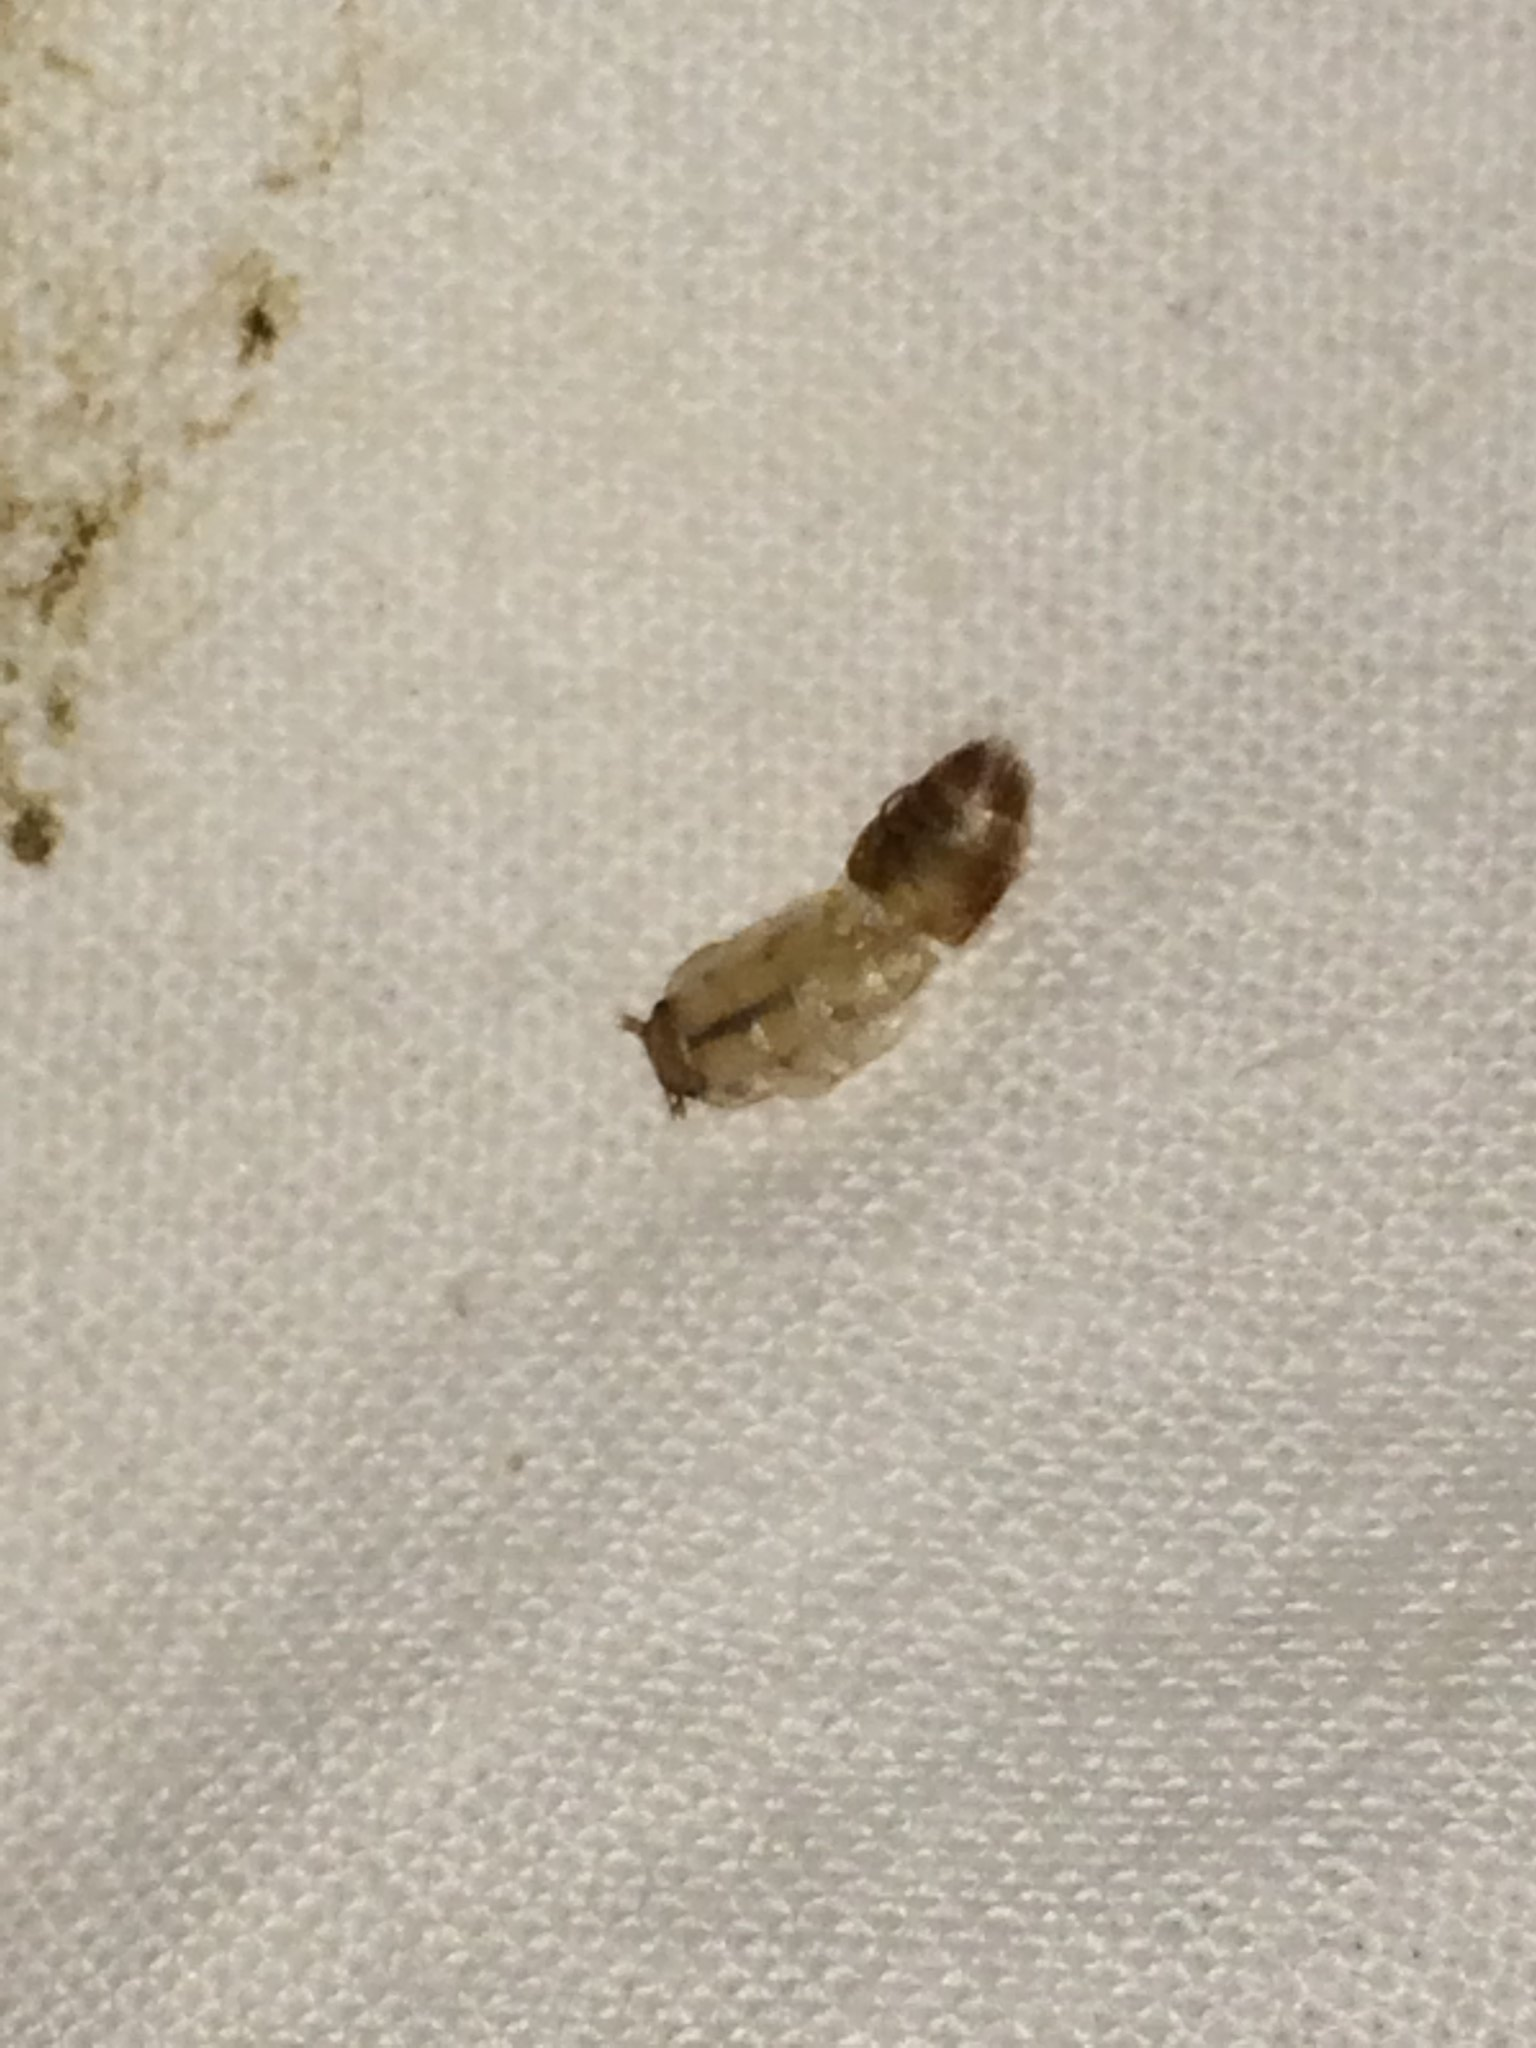 Gray Bug On Bed : Expert id needed a squished silverfish ? got bed bugs